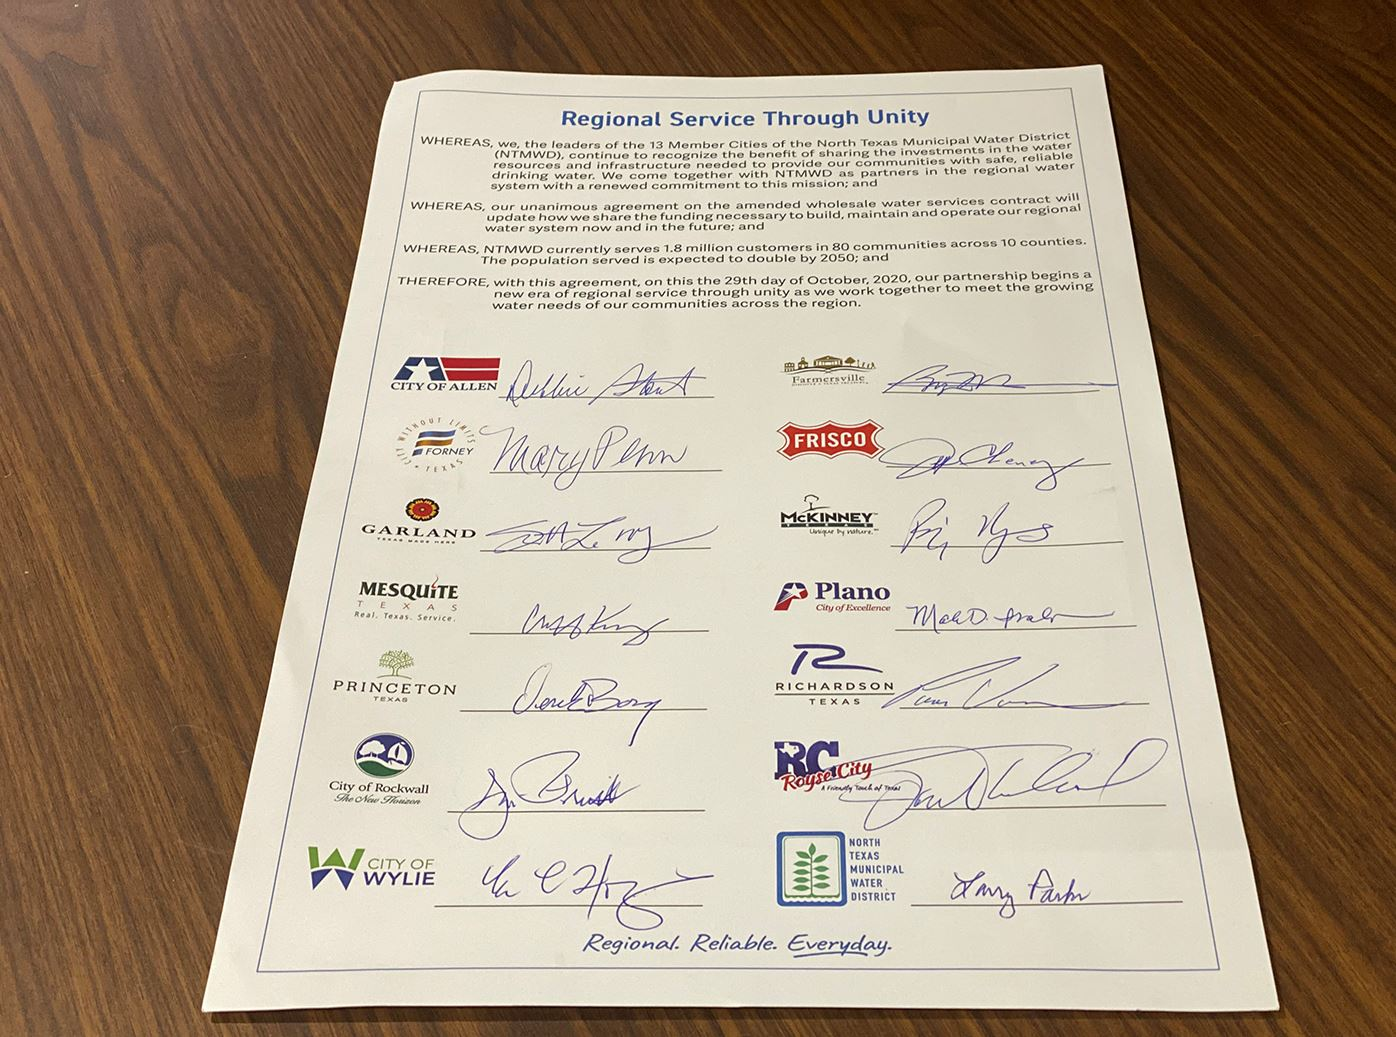 10-29-20 NTMWD Contract Signing - Proclamation - Mesquite TX